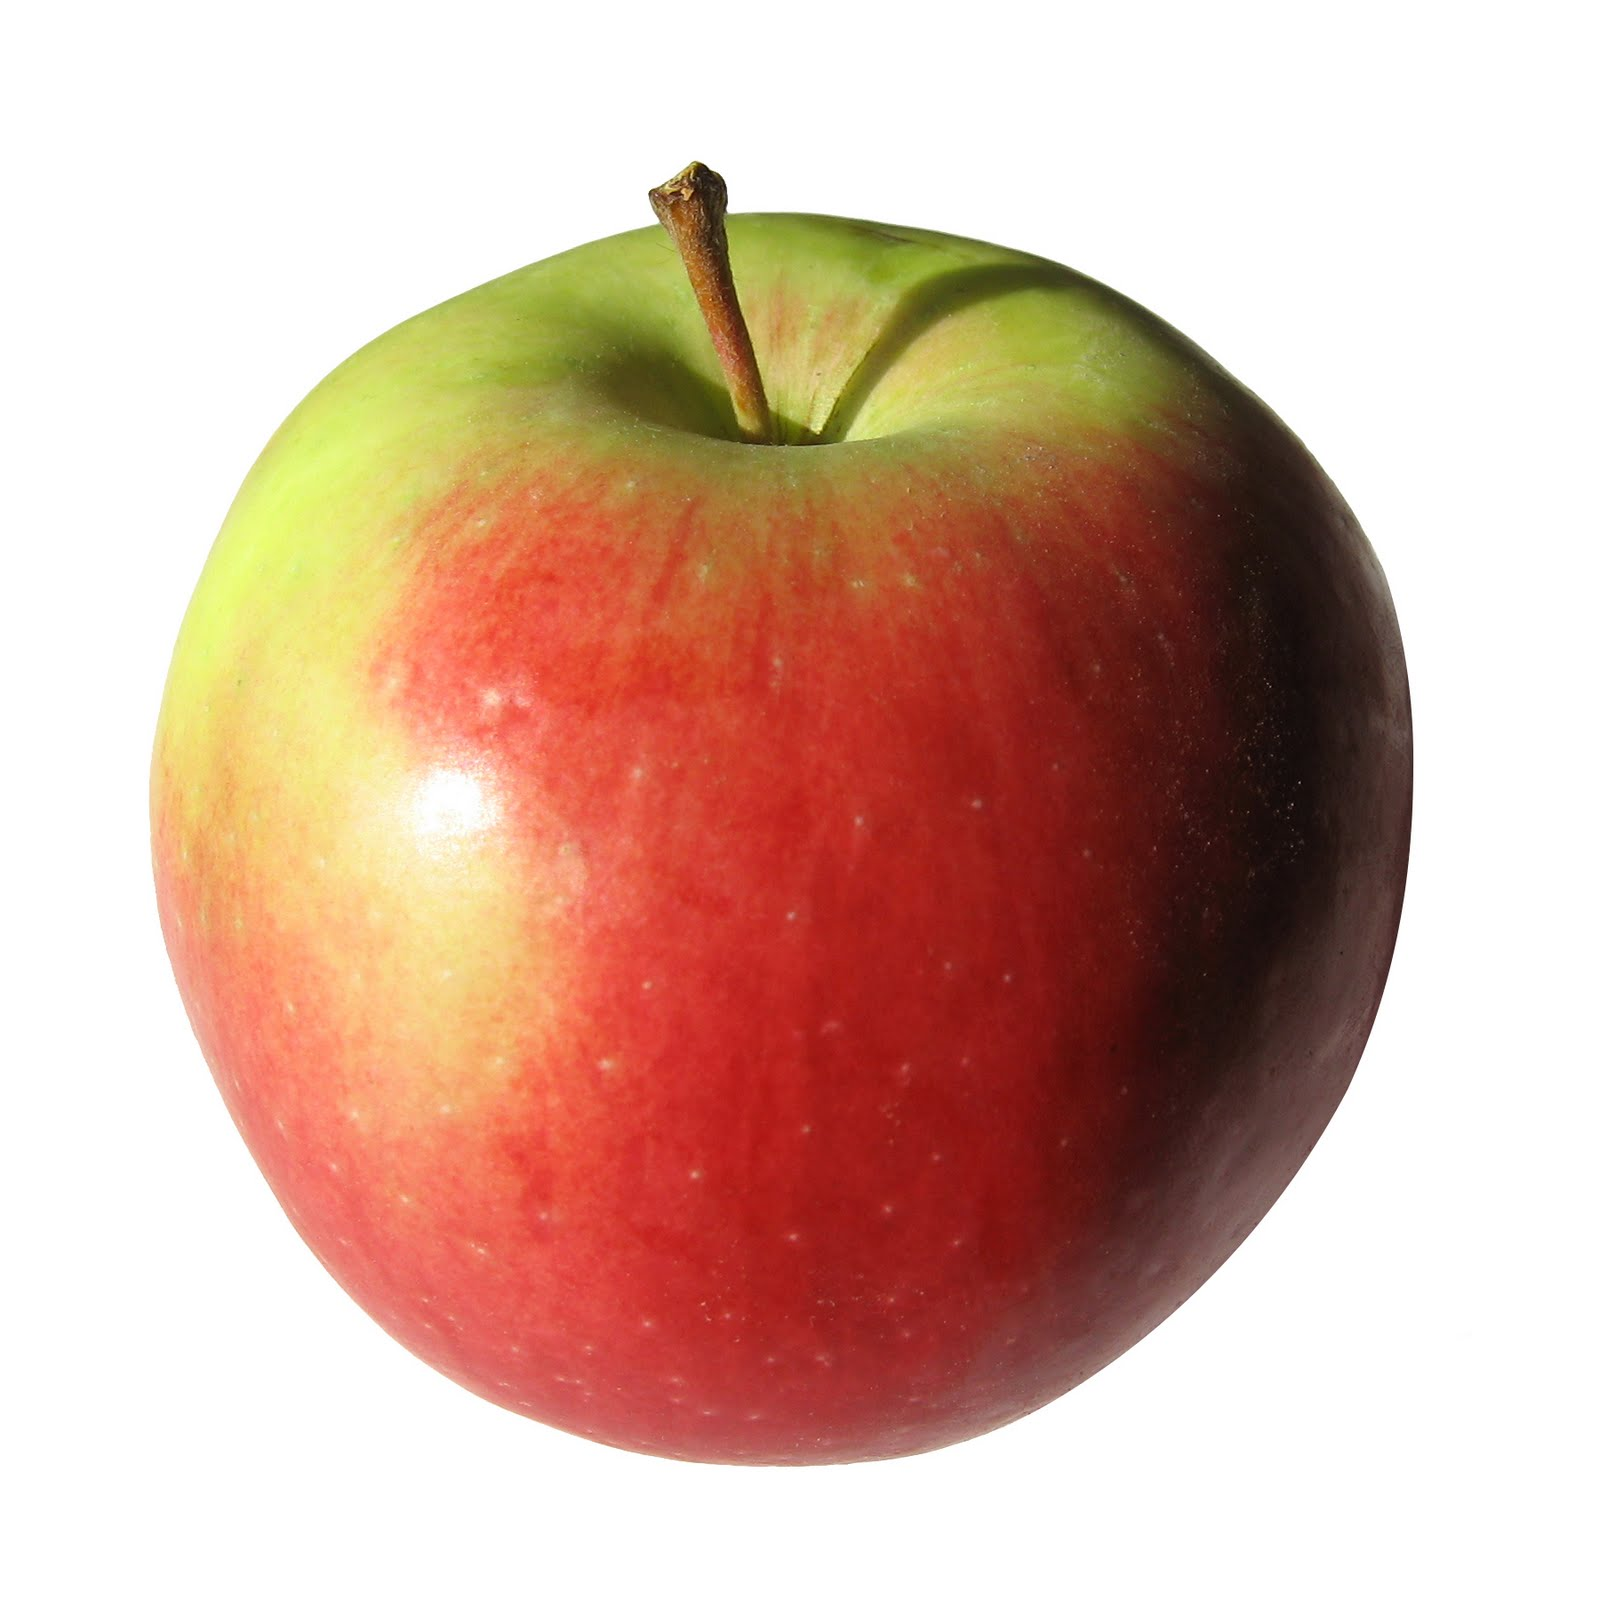 Foods 3 for Immagini hd apple